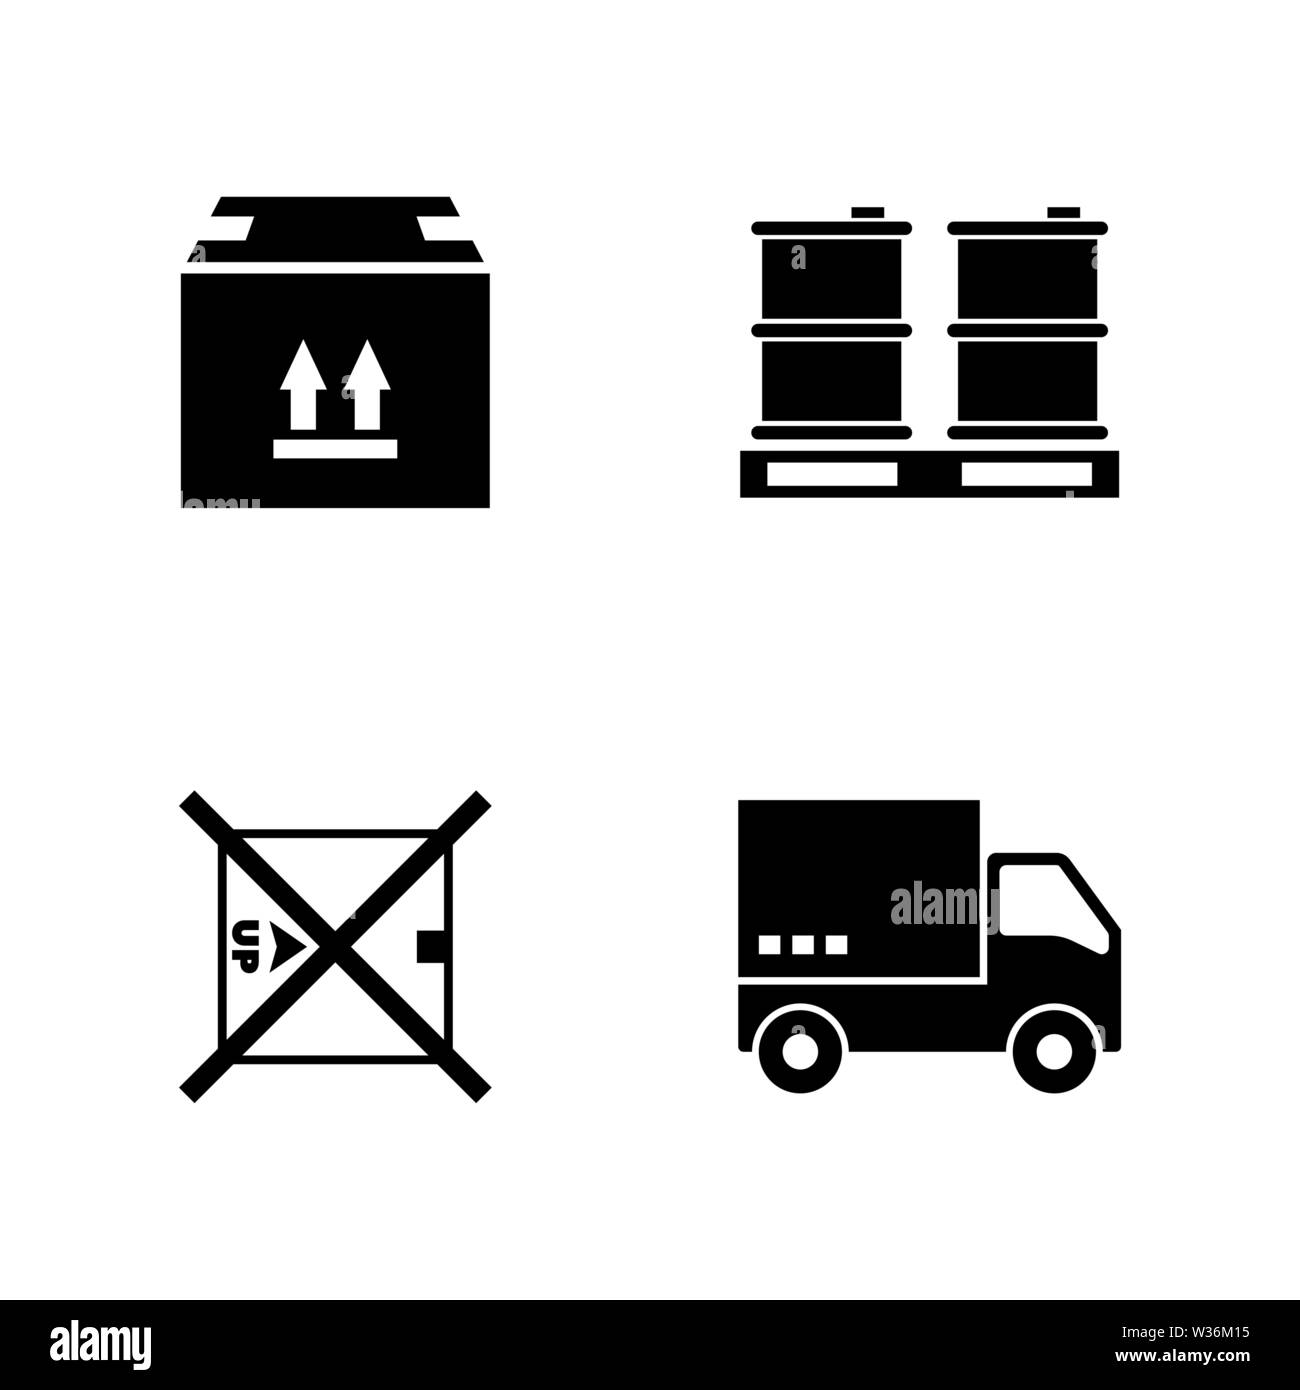 Express delivery. Simple Related Vector Icons Set for Video, Mobile Apps, Web Sites, Print Projects and Your Design. Black Flat Illustration on White - Stock Image